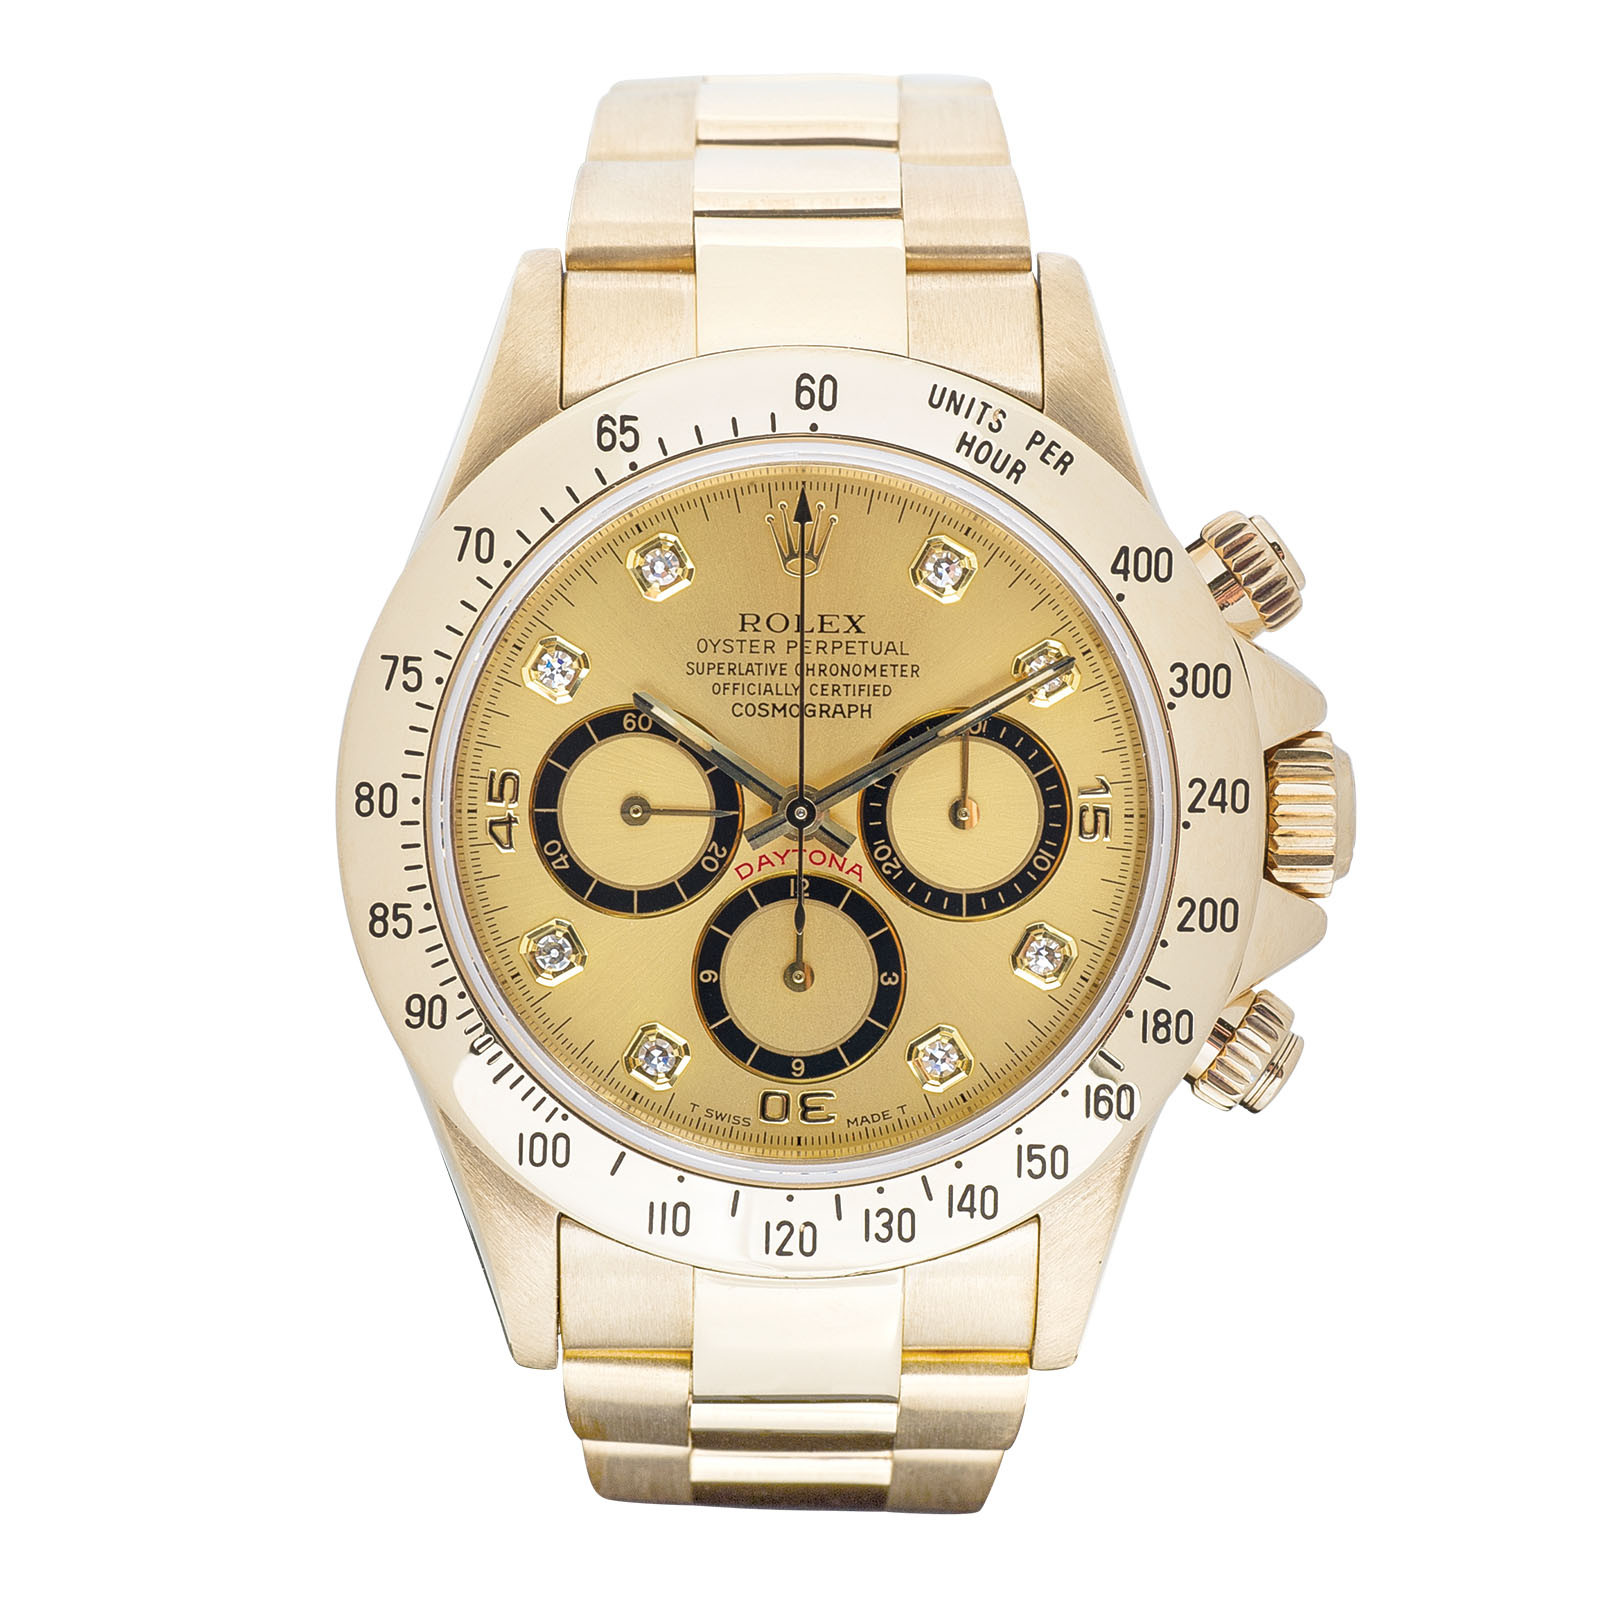 Pre-Owned Men's Rolex Daytona Cosmograph